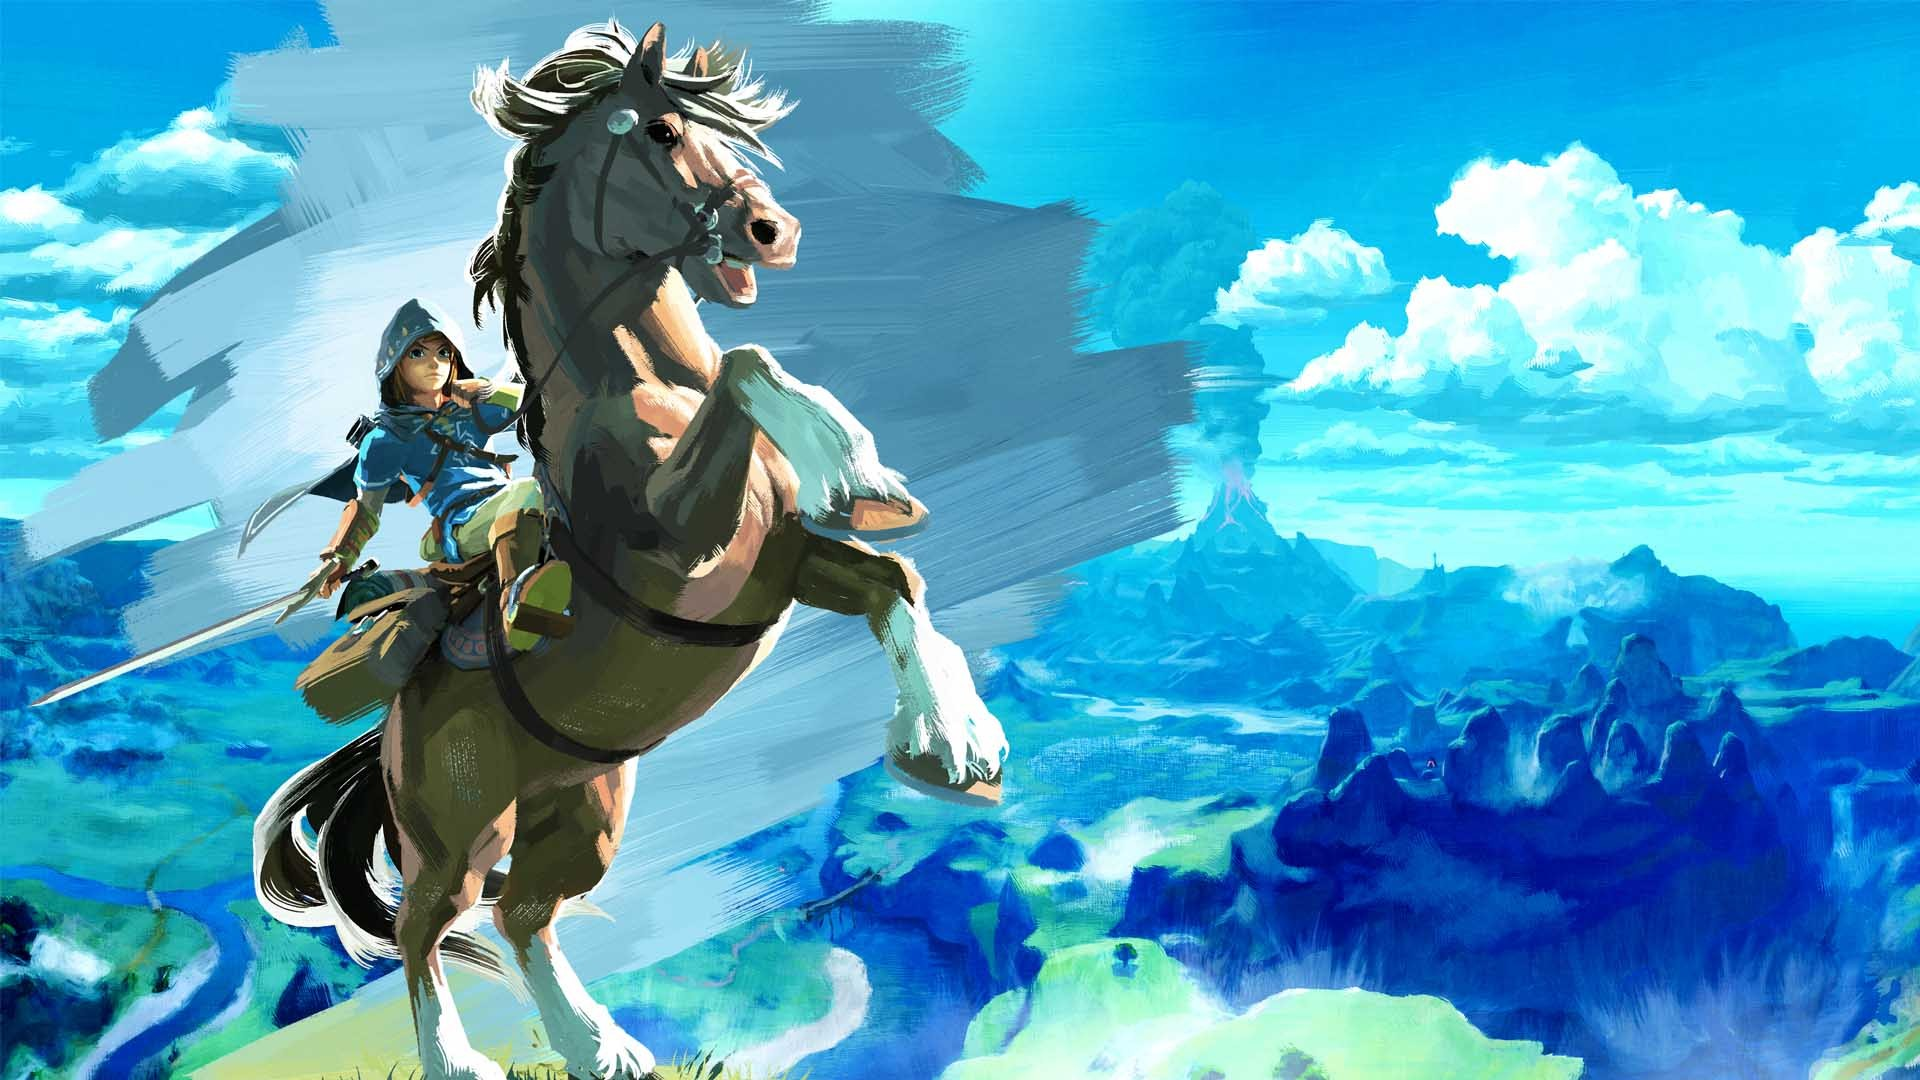 Breath Of The Wild Background Download Free High Resolution